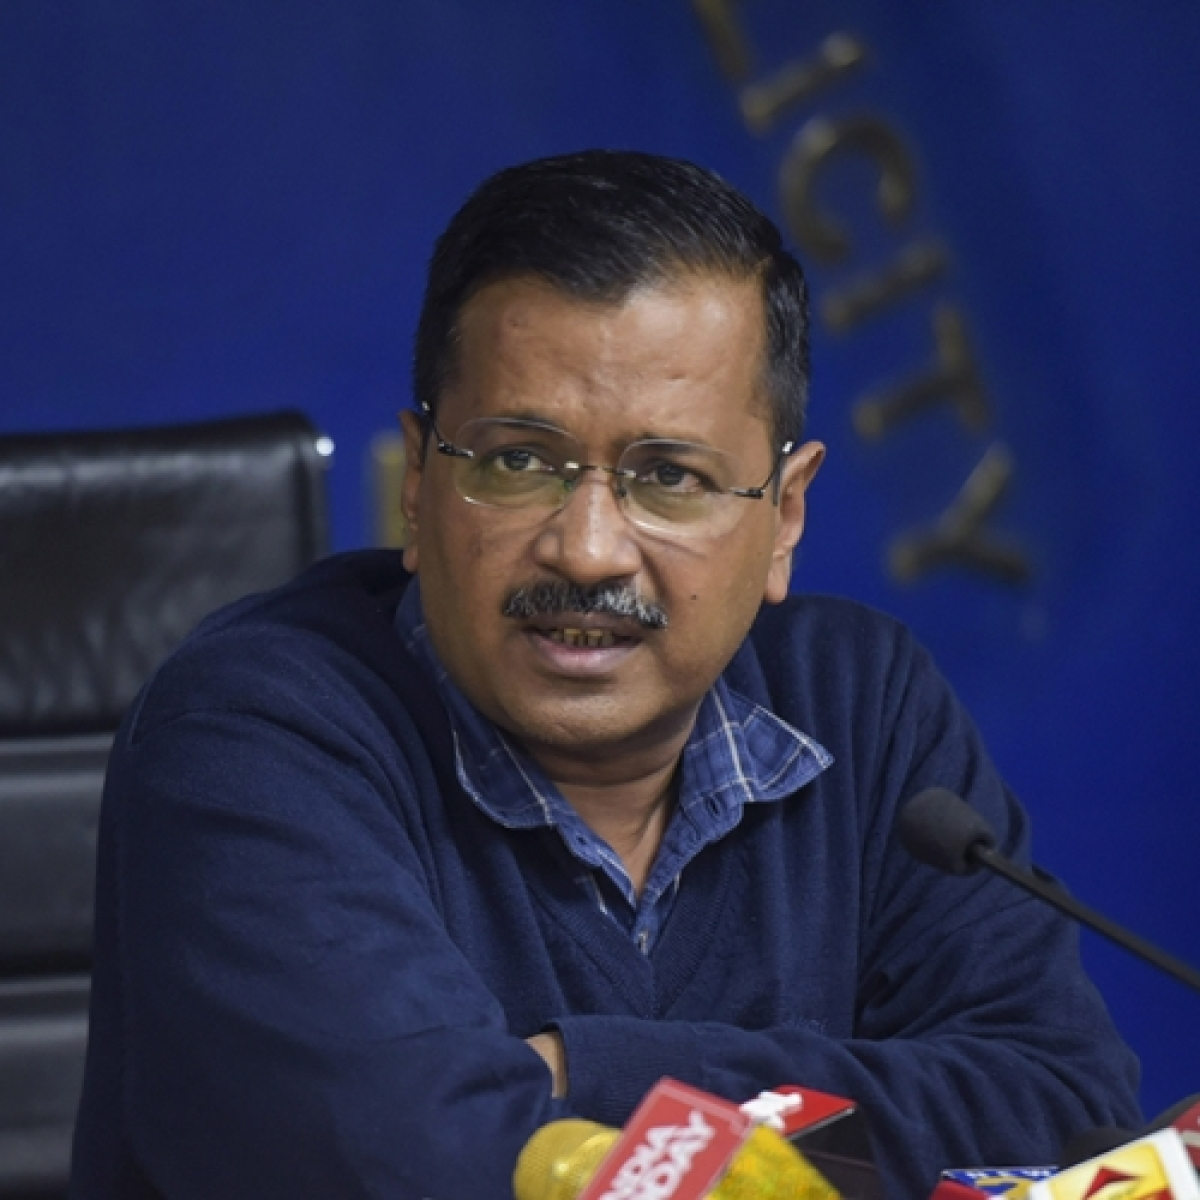 Delhi's weekend COVID-19 curfew: What's allowed, what's not